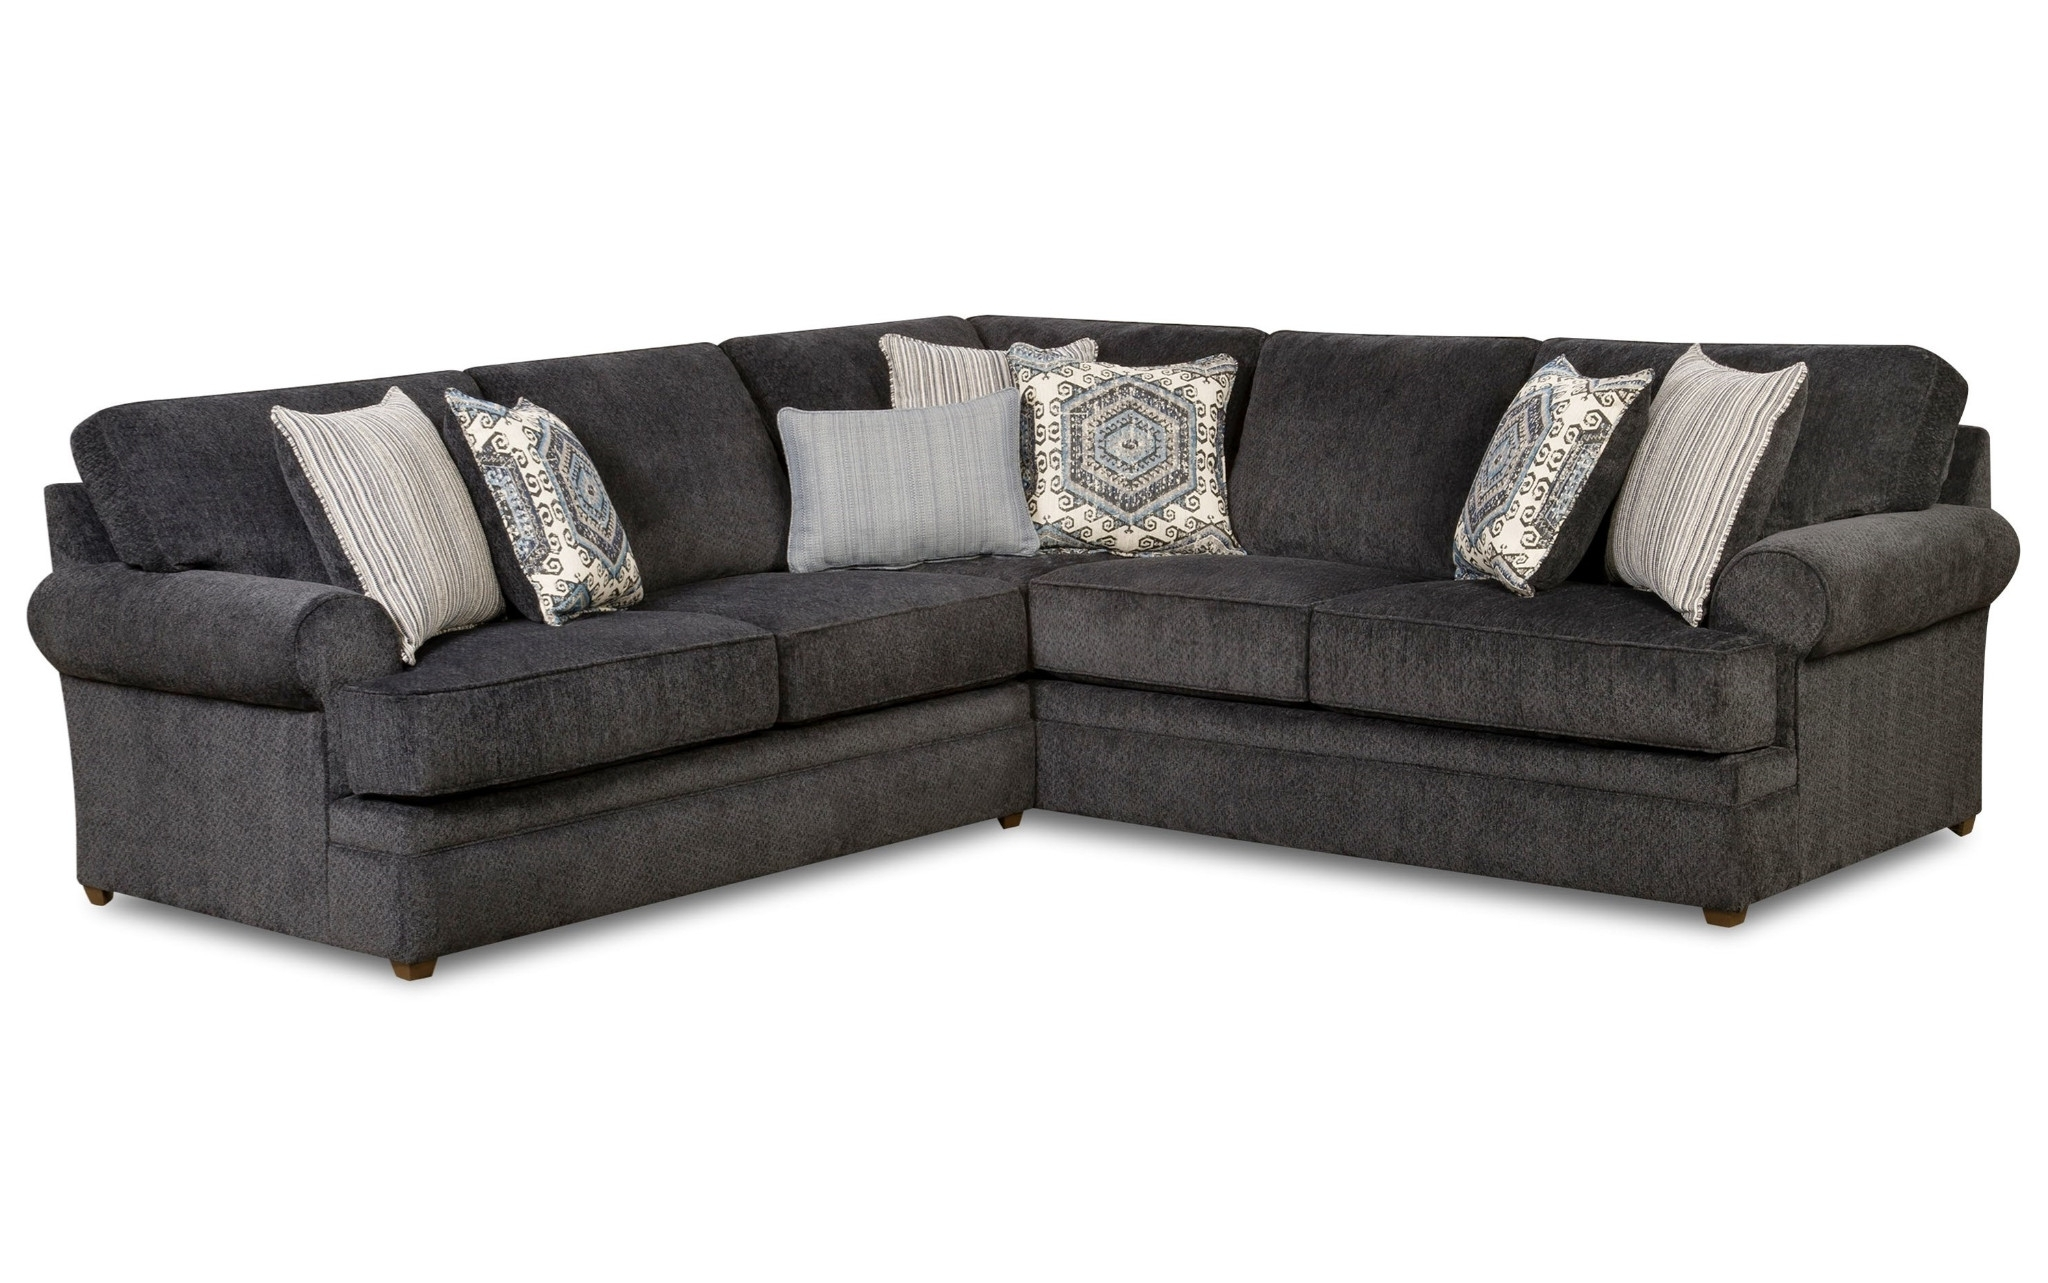 Sectional Sofas In Greensboro Nc With 2017 Bellamy Slate 2 Piece Sectional Beauty Restsimmons $ (View 11 of 15)